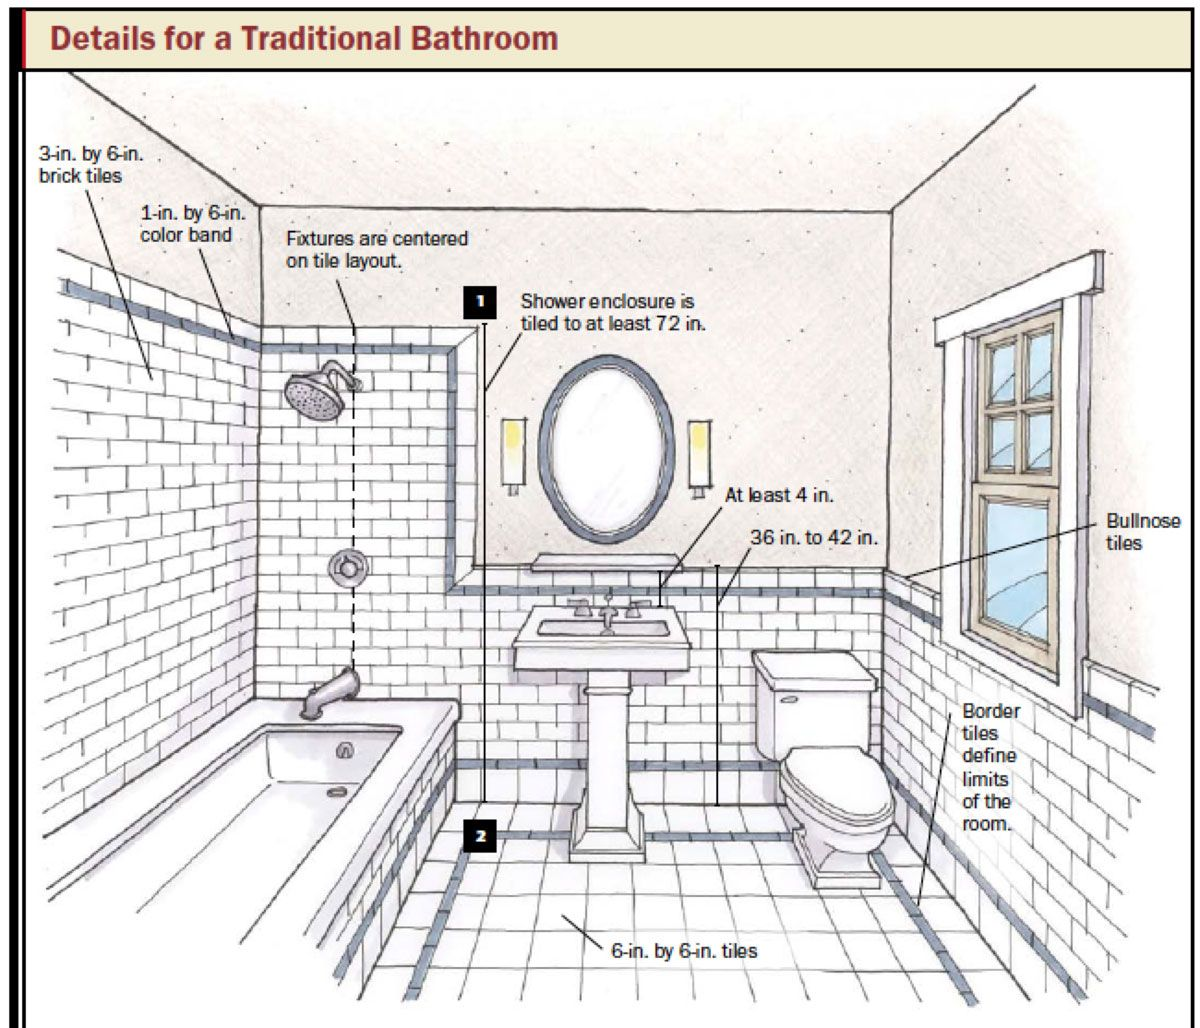 design bathroom floor plan tool   Bathroom and Kitchen Design  How to  Choose Tile and. design bathroom floor plan tool   Bathroom and Kitchen Design  How